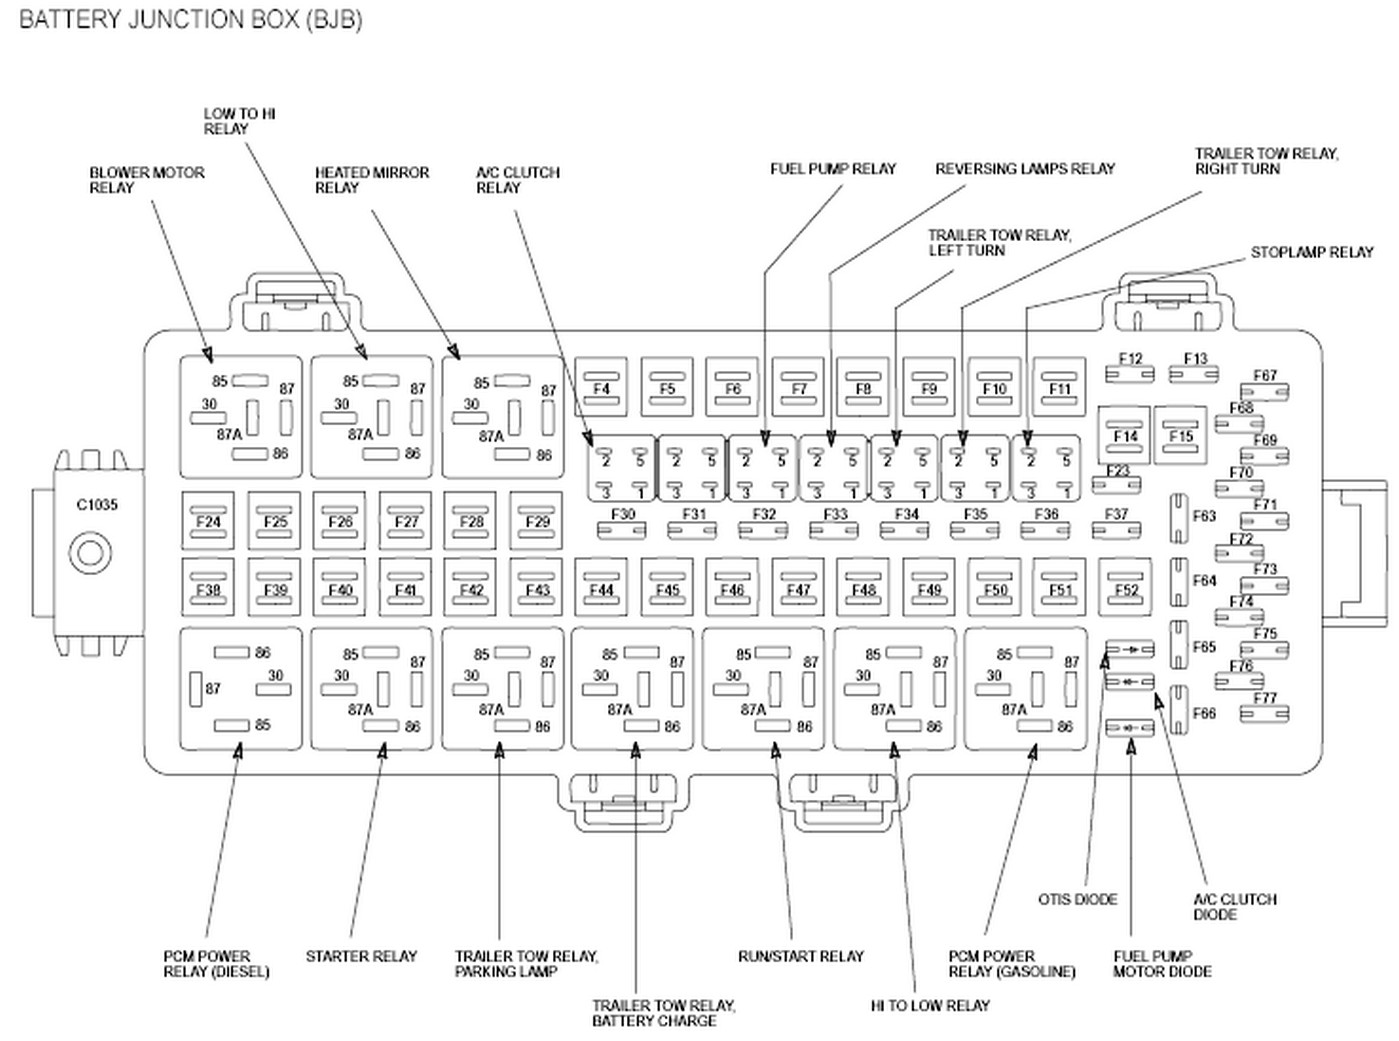 2011 ford f250 fuse box diagram Zoinyhu 2012 f250 fuse box location 2009 ford fusion fuse box diagram 2004 f350 fuse box diagram at fashall.co